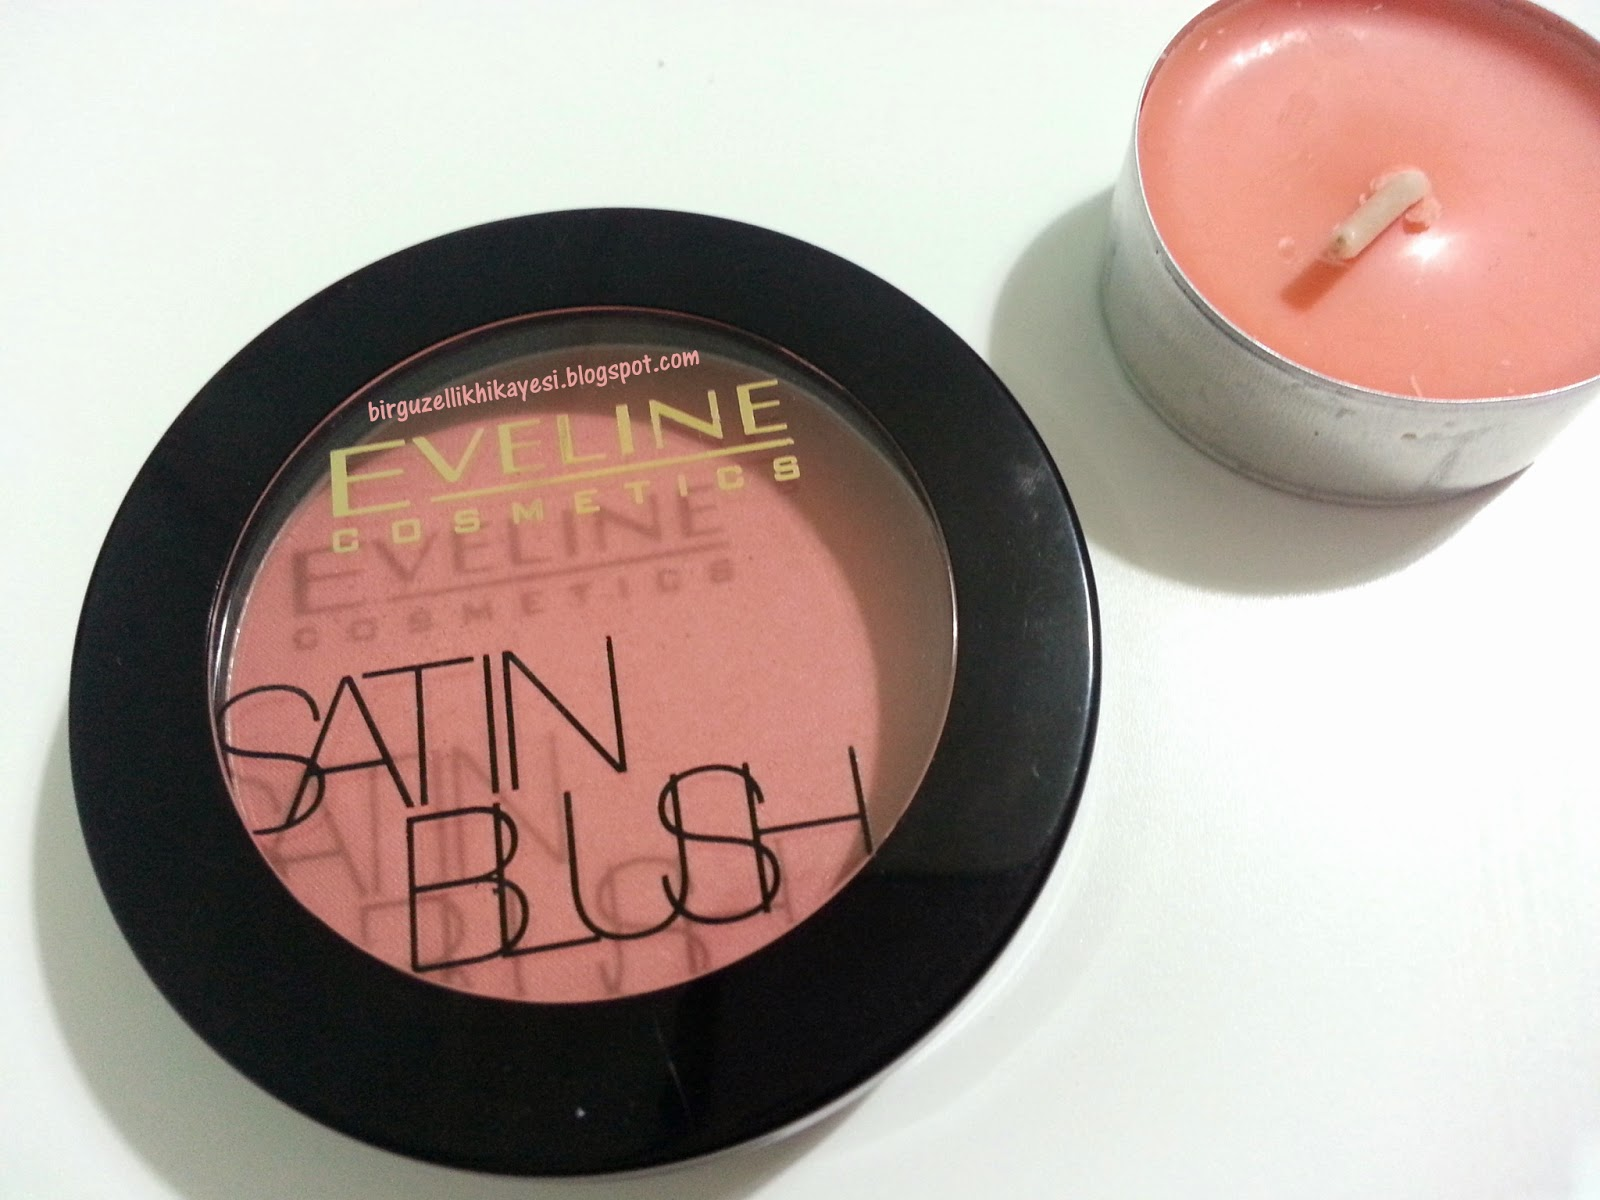 eveline cosmetics satin allik